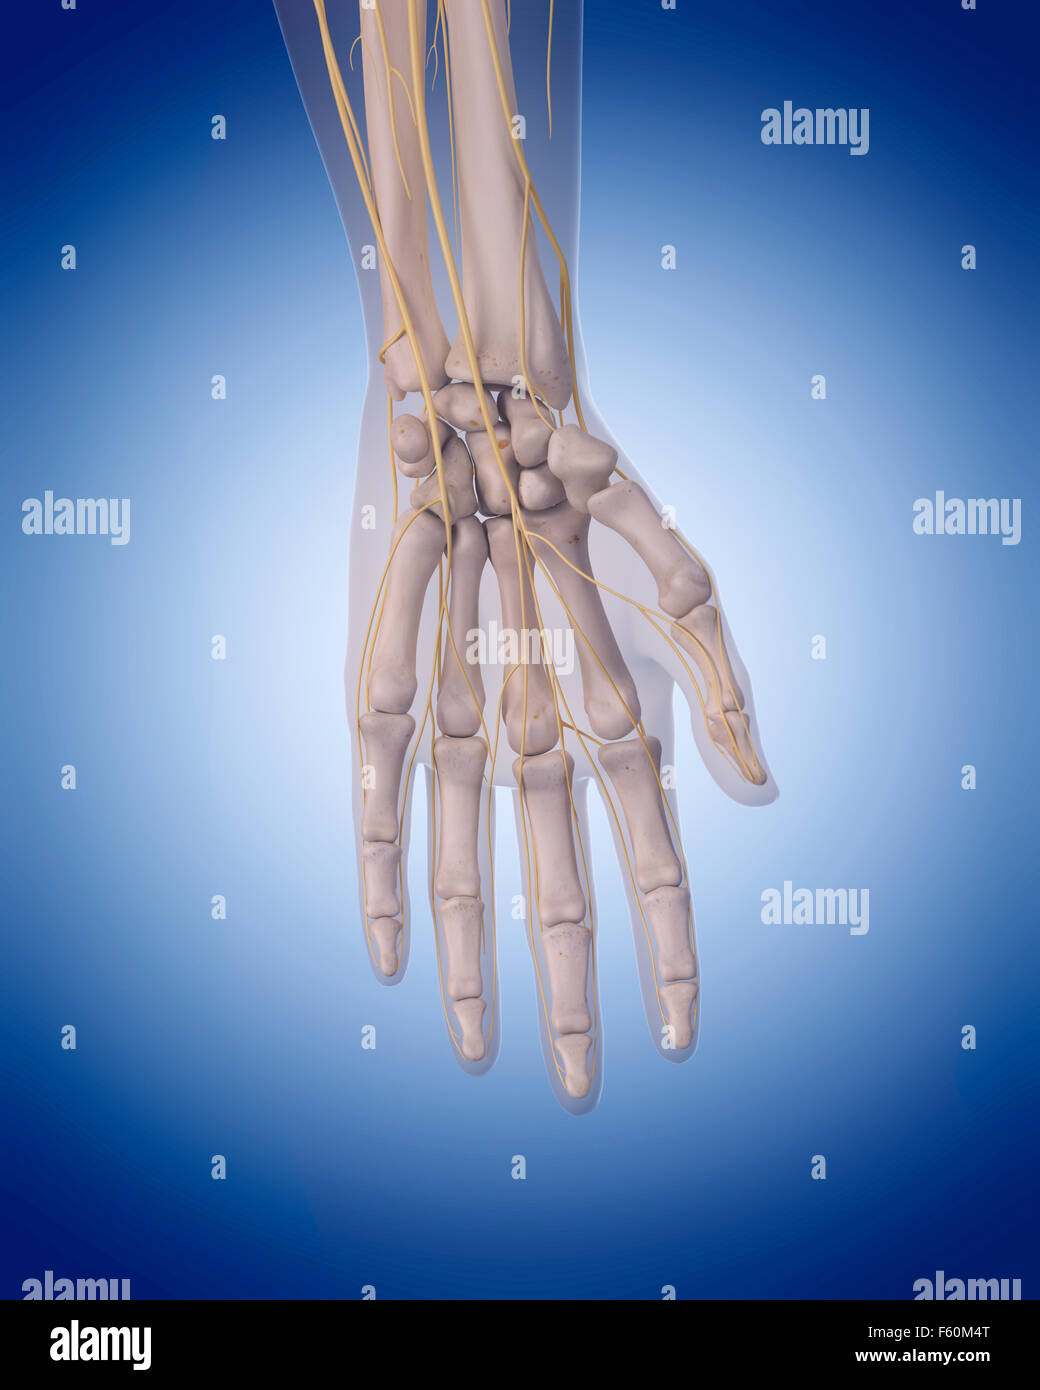 hand nerves diagram 2008 ford f350 power mirror wiring human illustration stock photos medically accurate of the image